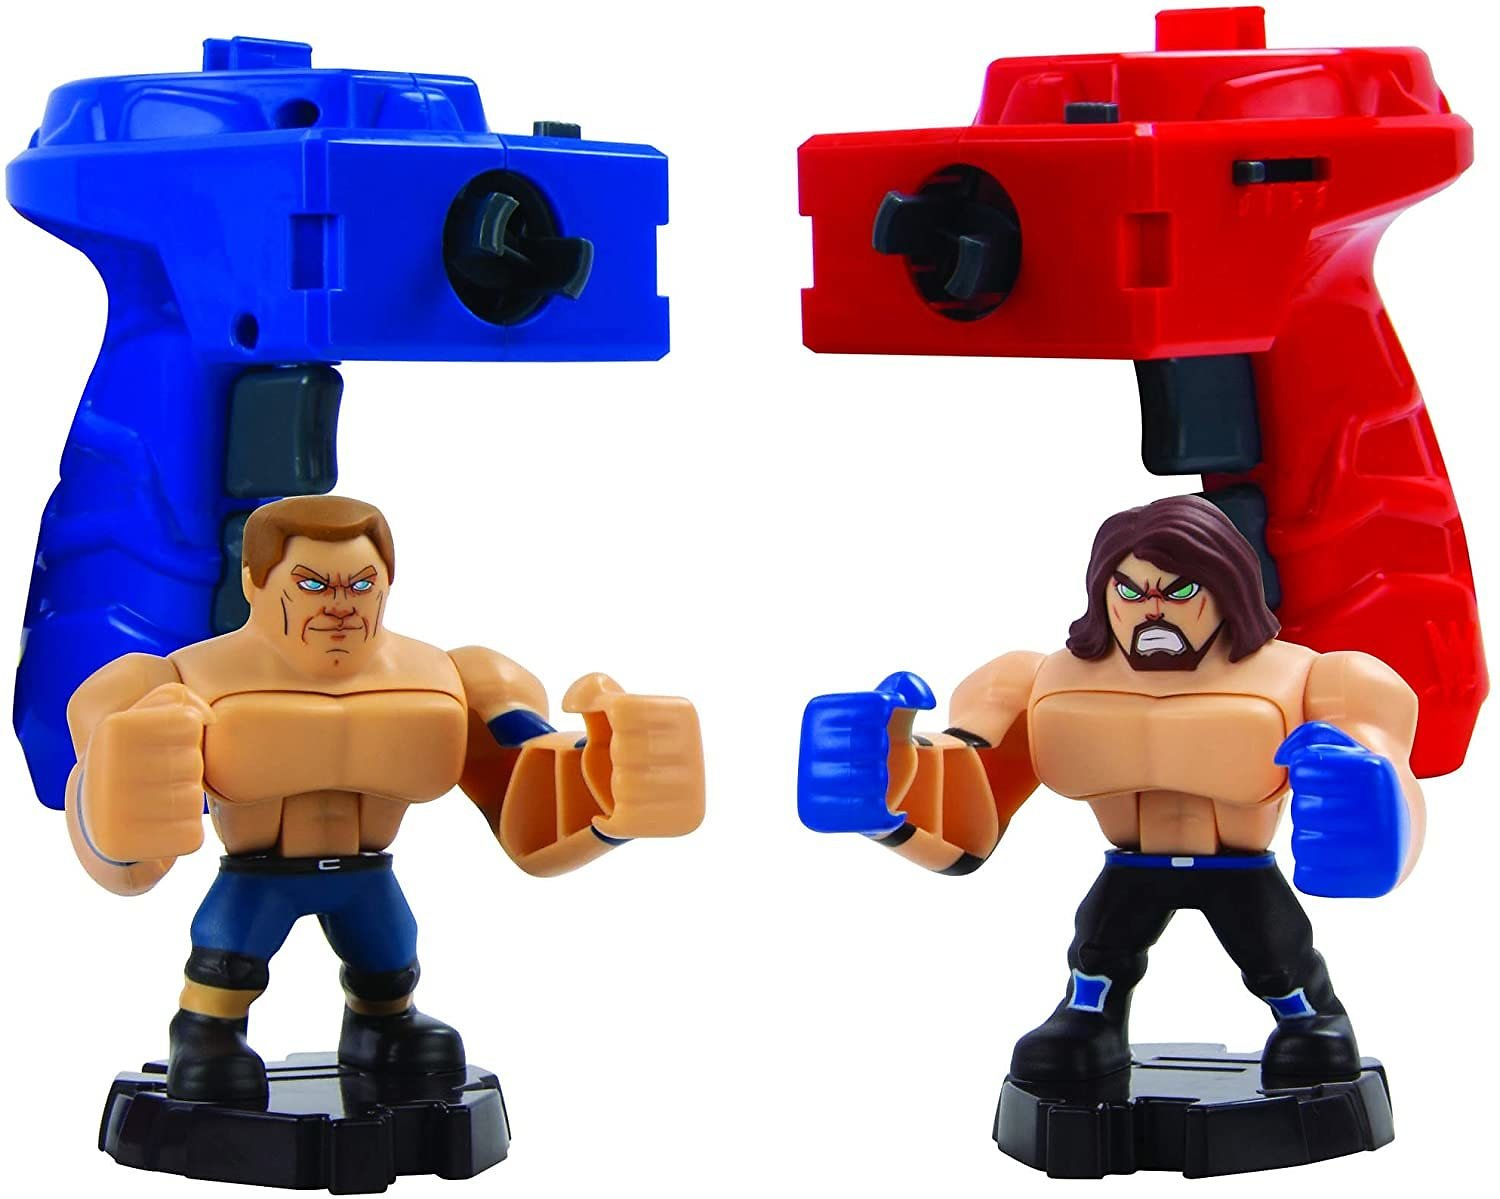 TOMY WWE Action Figures Battle Game Set with Handheld Controllers for Kids, Smash Brawler